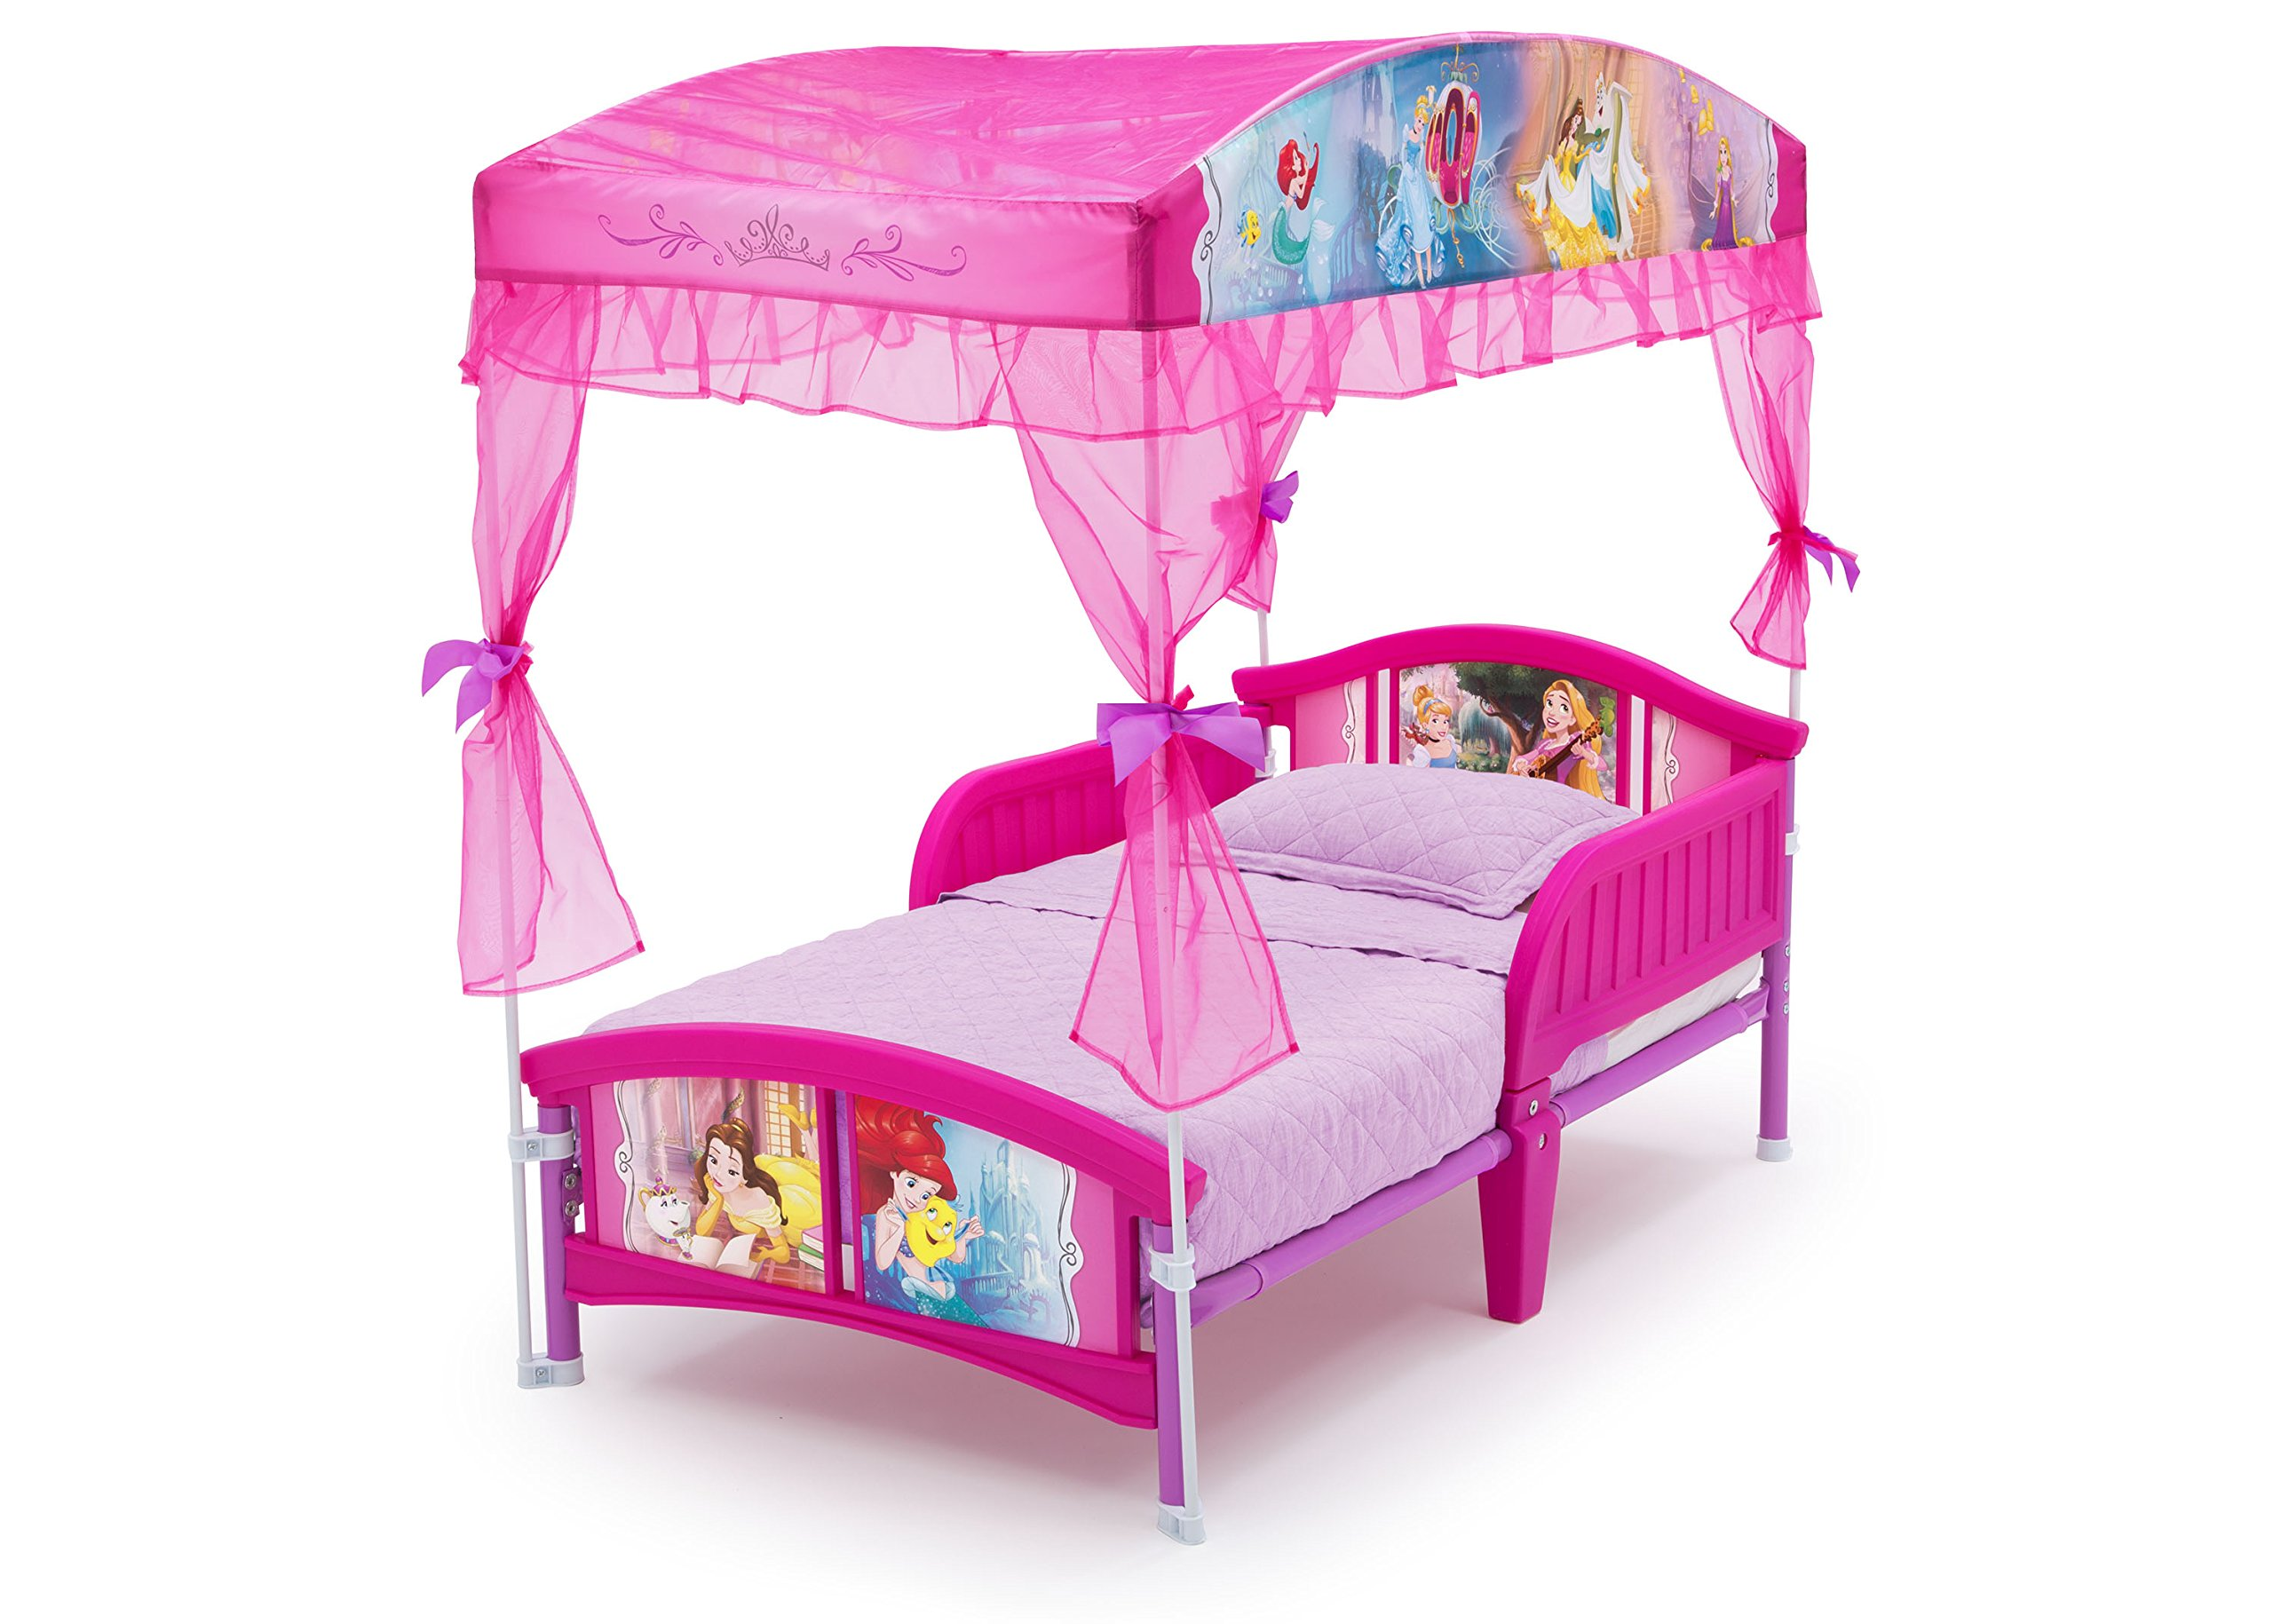 Toddler Bed For Girl Princess: Amazon.com : Disney 4 Piece Toddler Set, Princess Dress To